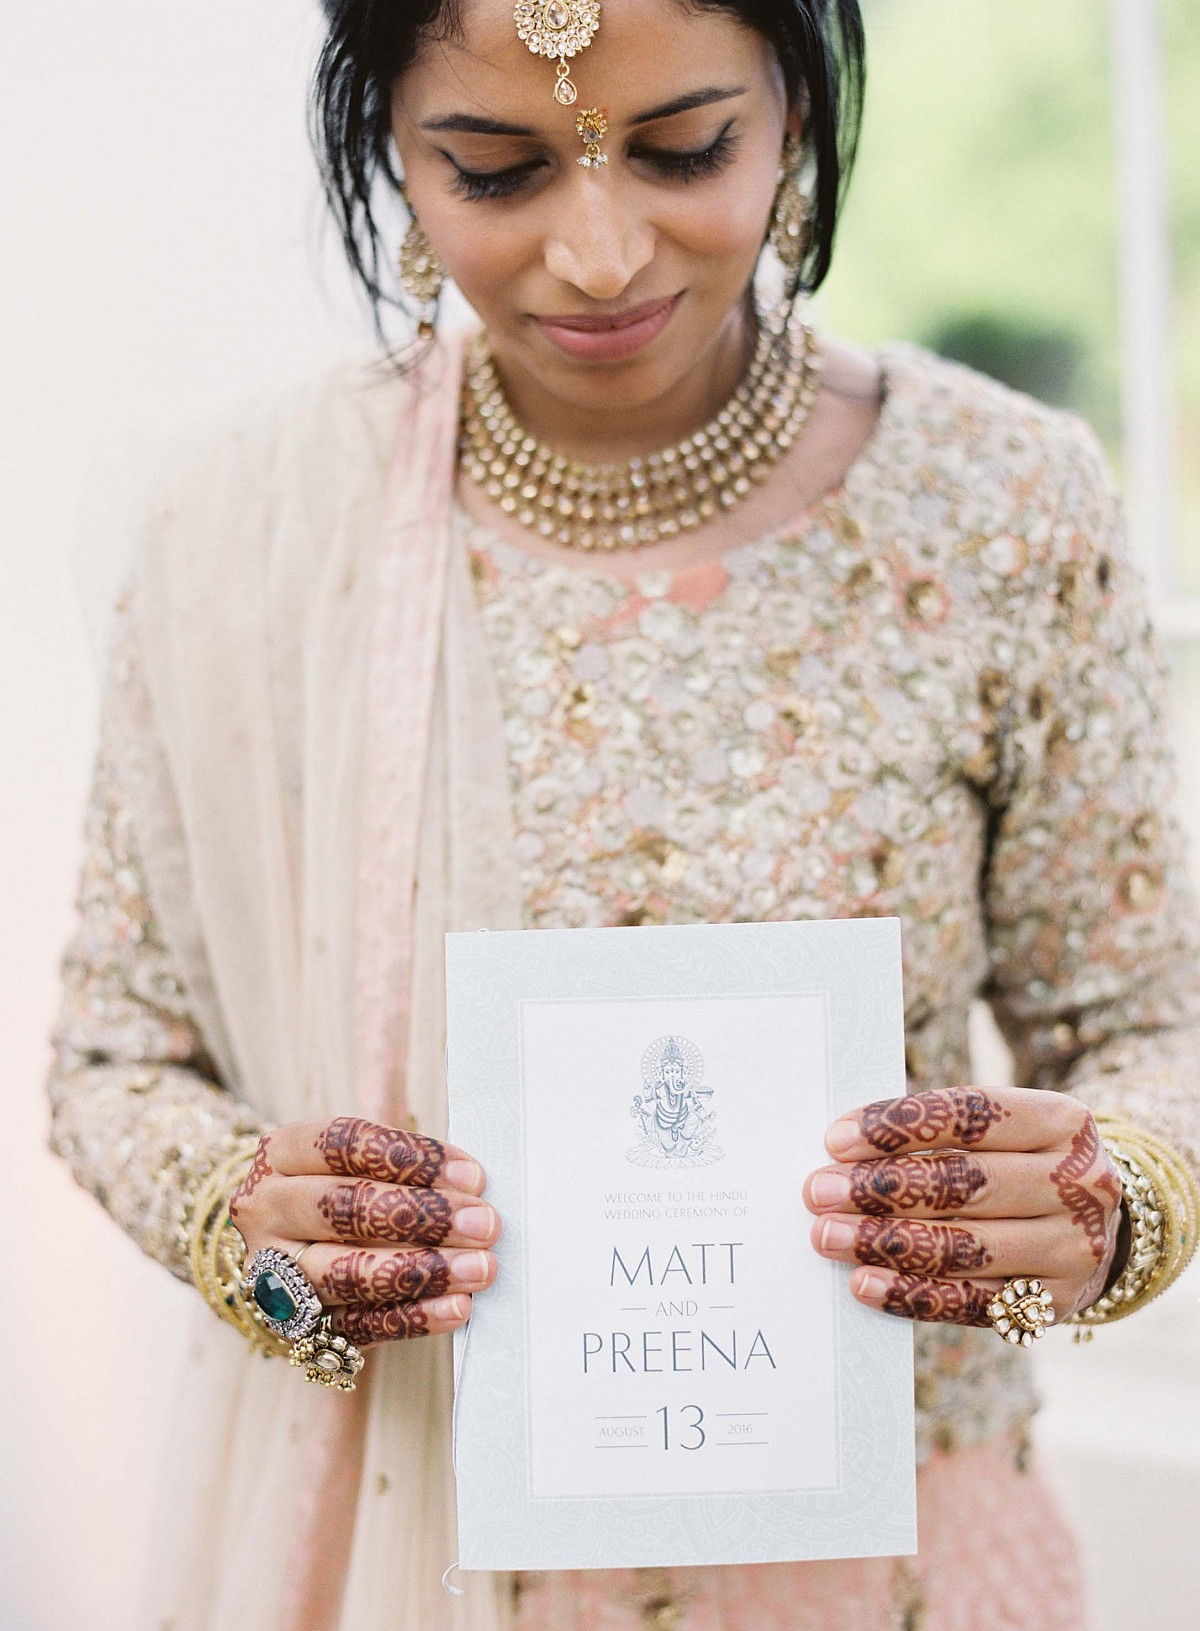 Preena and Matthew's Elegant Multi-faith Wedding